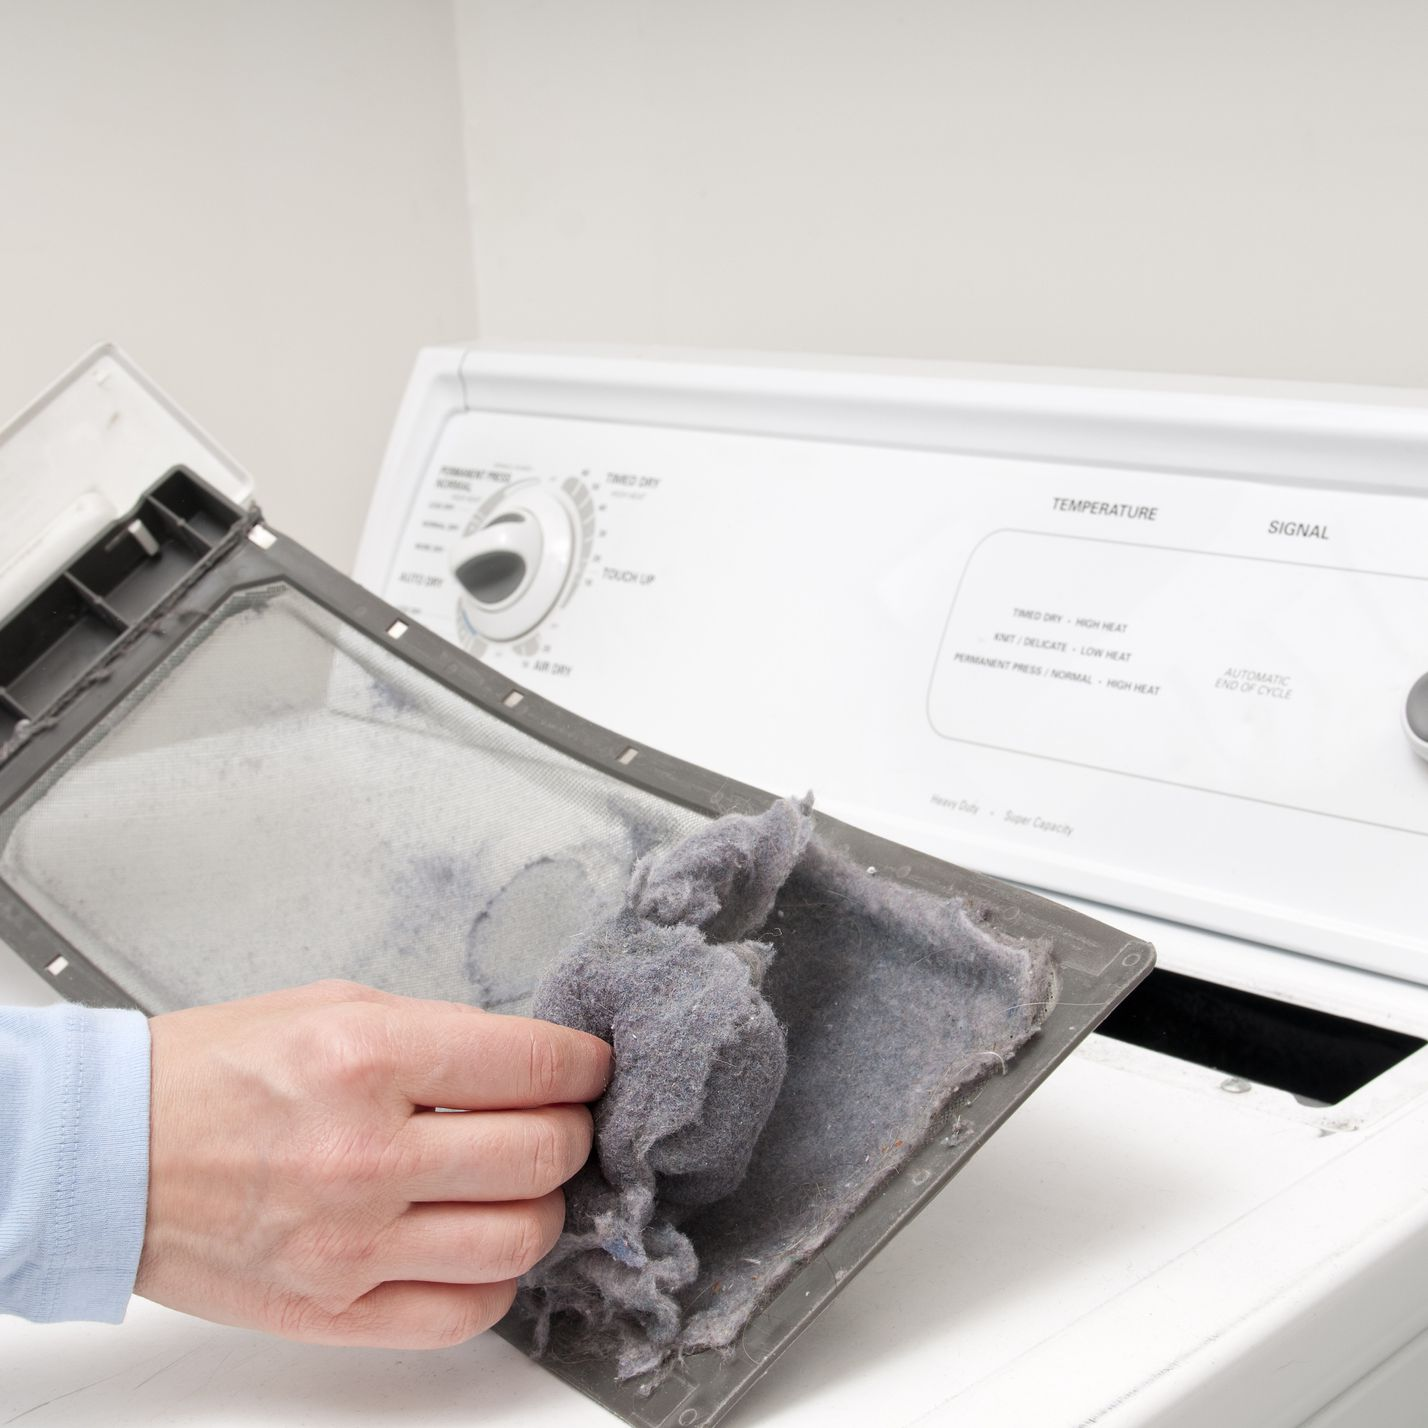 6 Creative Ways To Reuse Laundry Dryer Lint